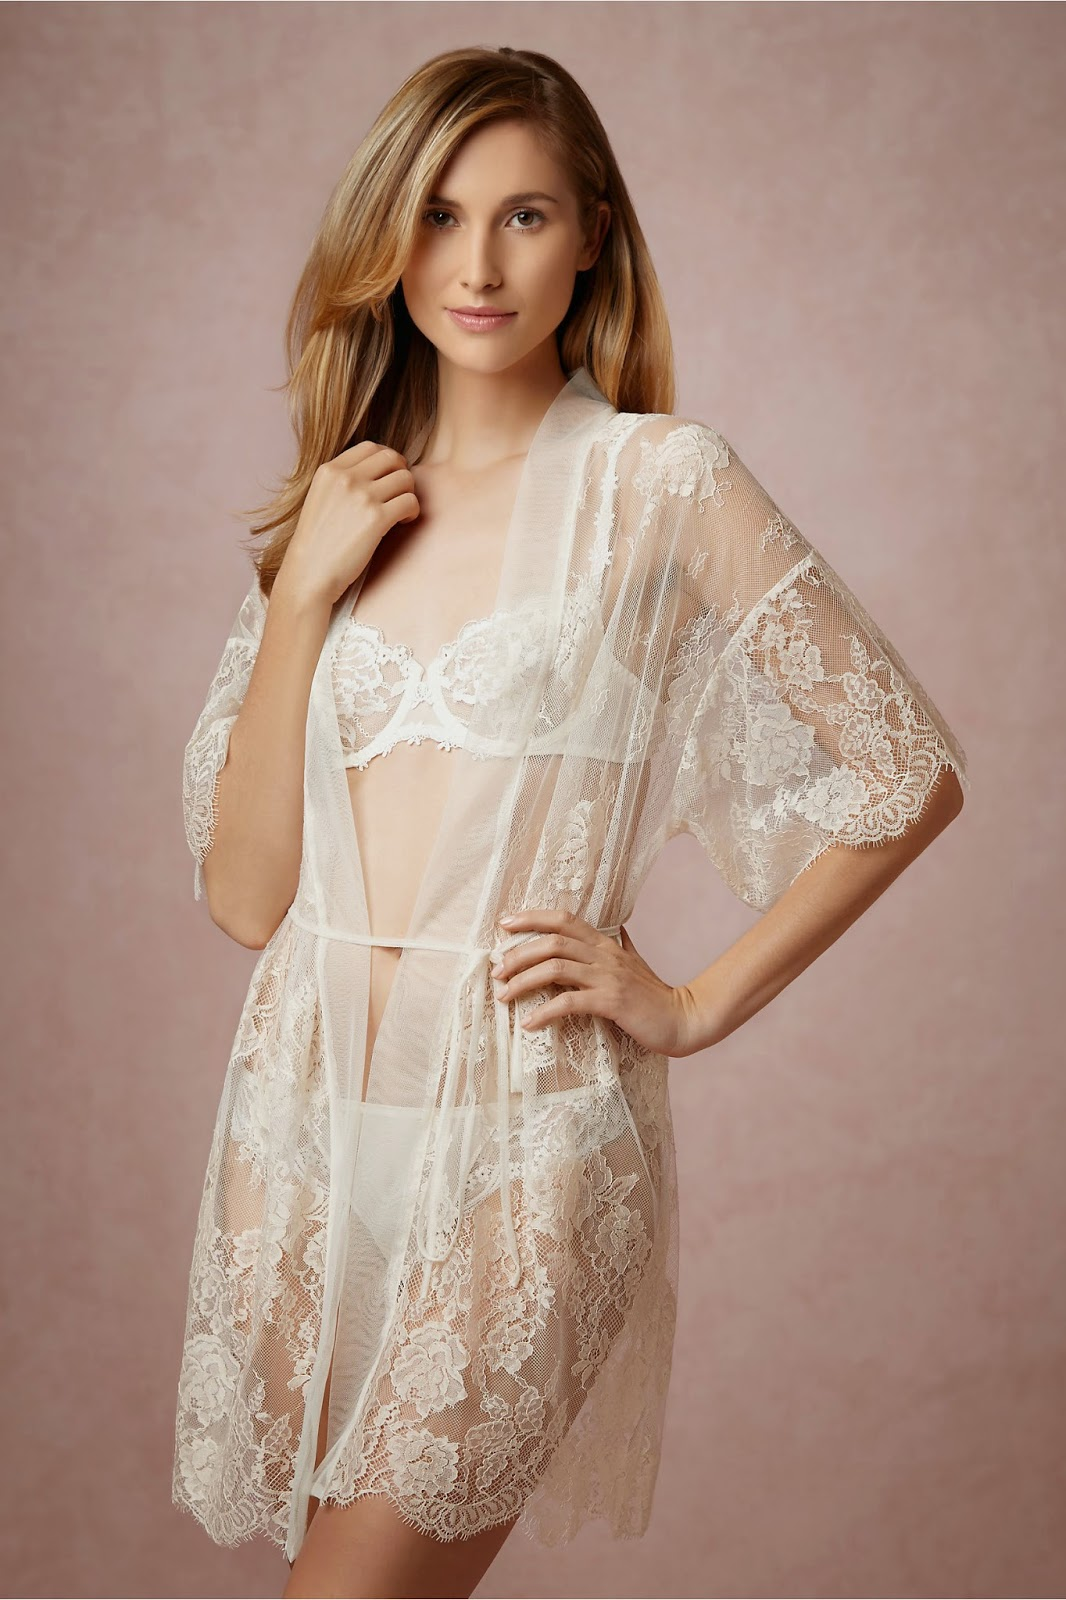 ab459754d I am a Woman in Love  BHLDN Delicate and Sexy Lingerie for the Bride ...